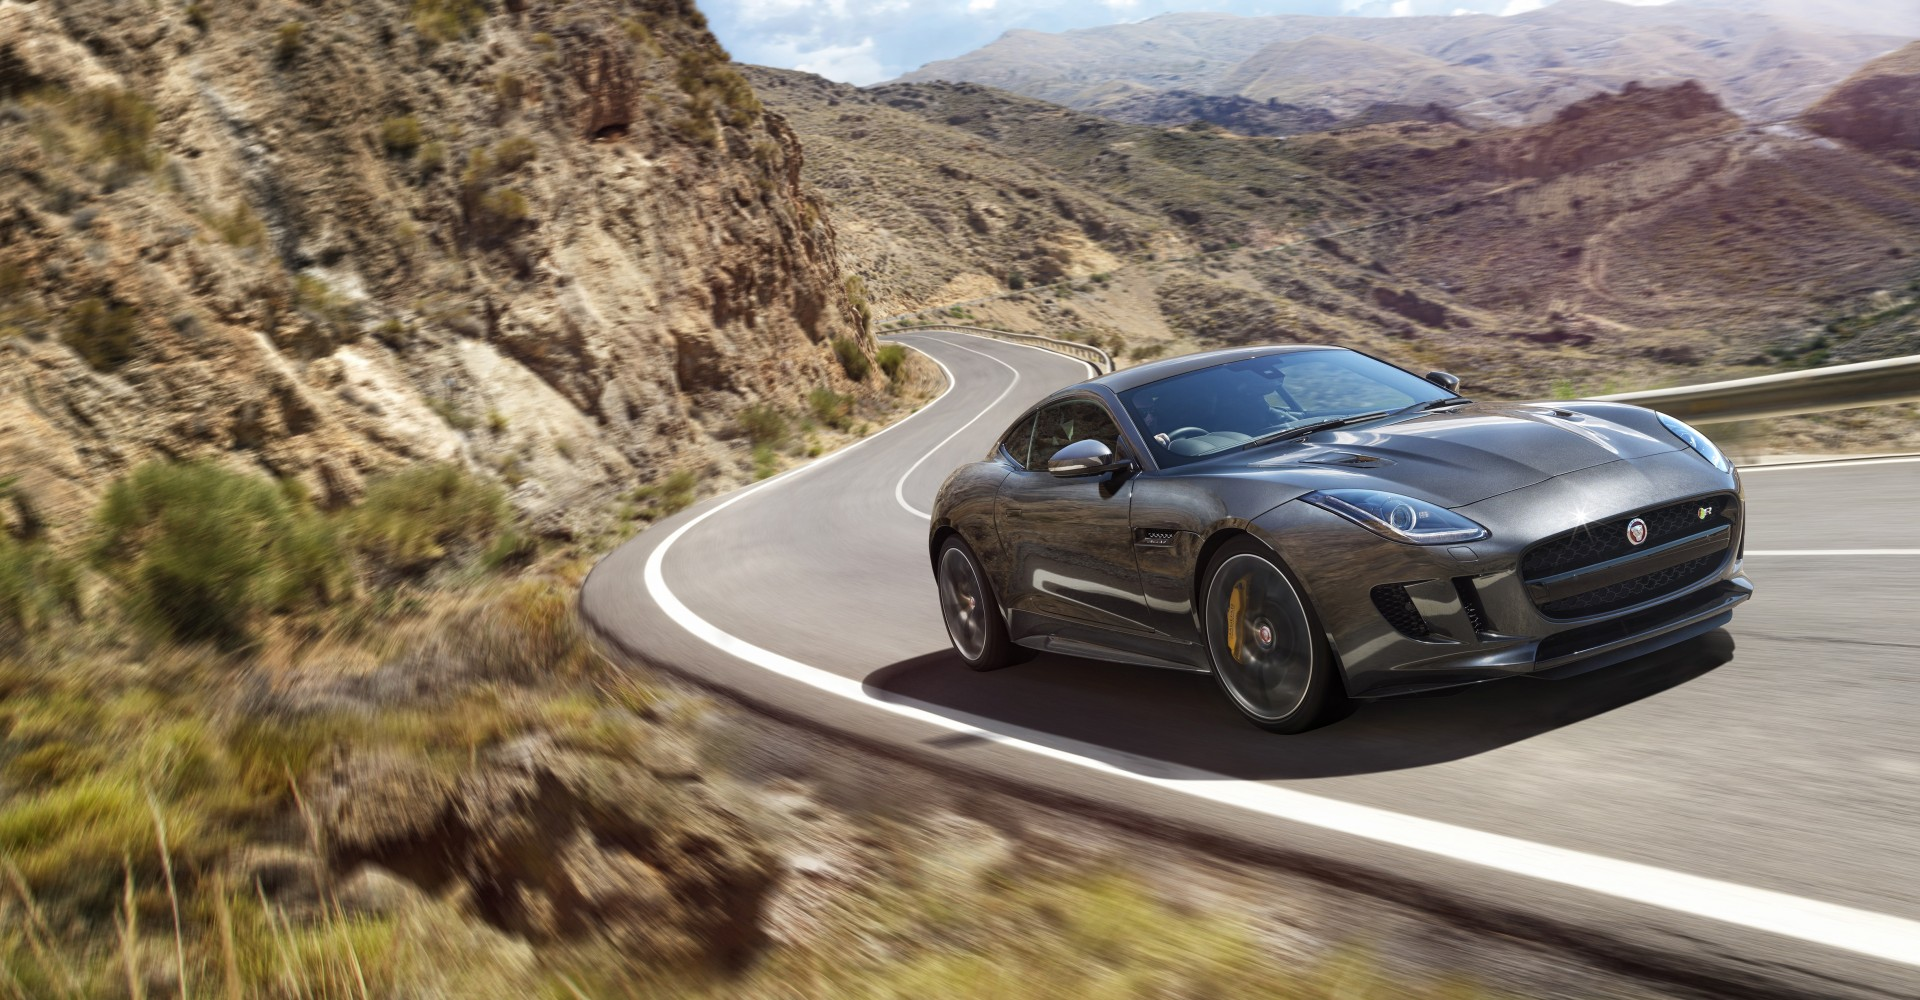 Beckham Turns Up The Britishness For Bond-Esque Jag Ad